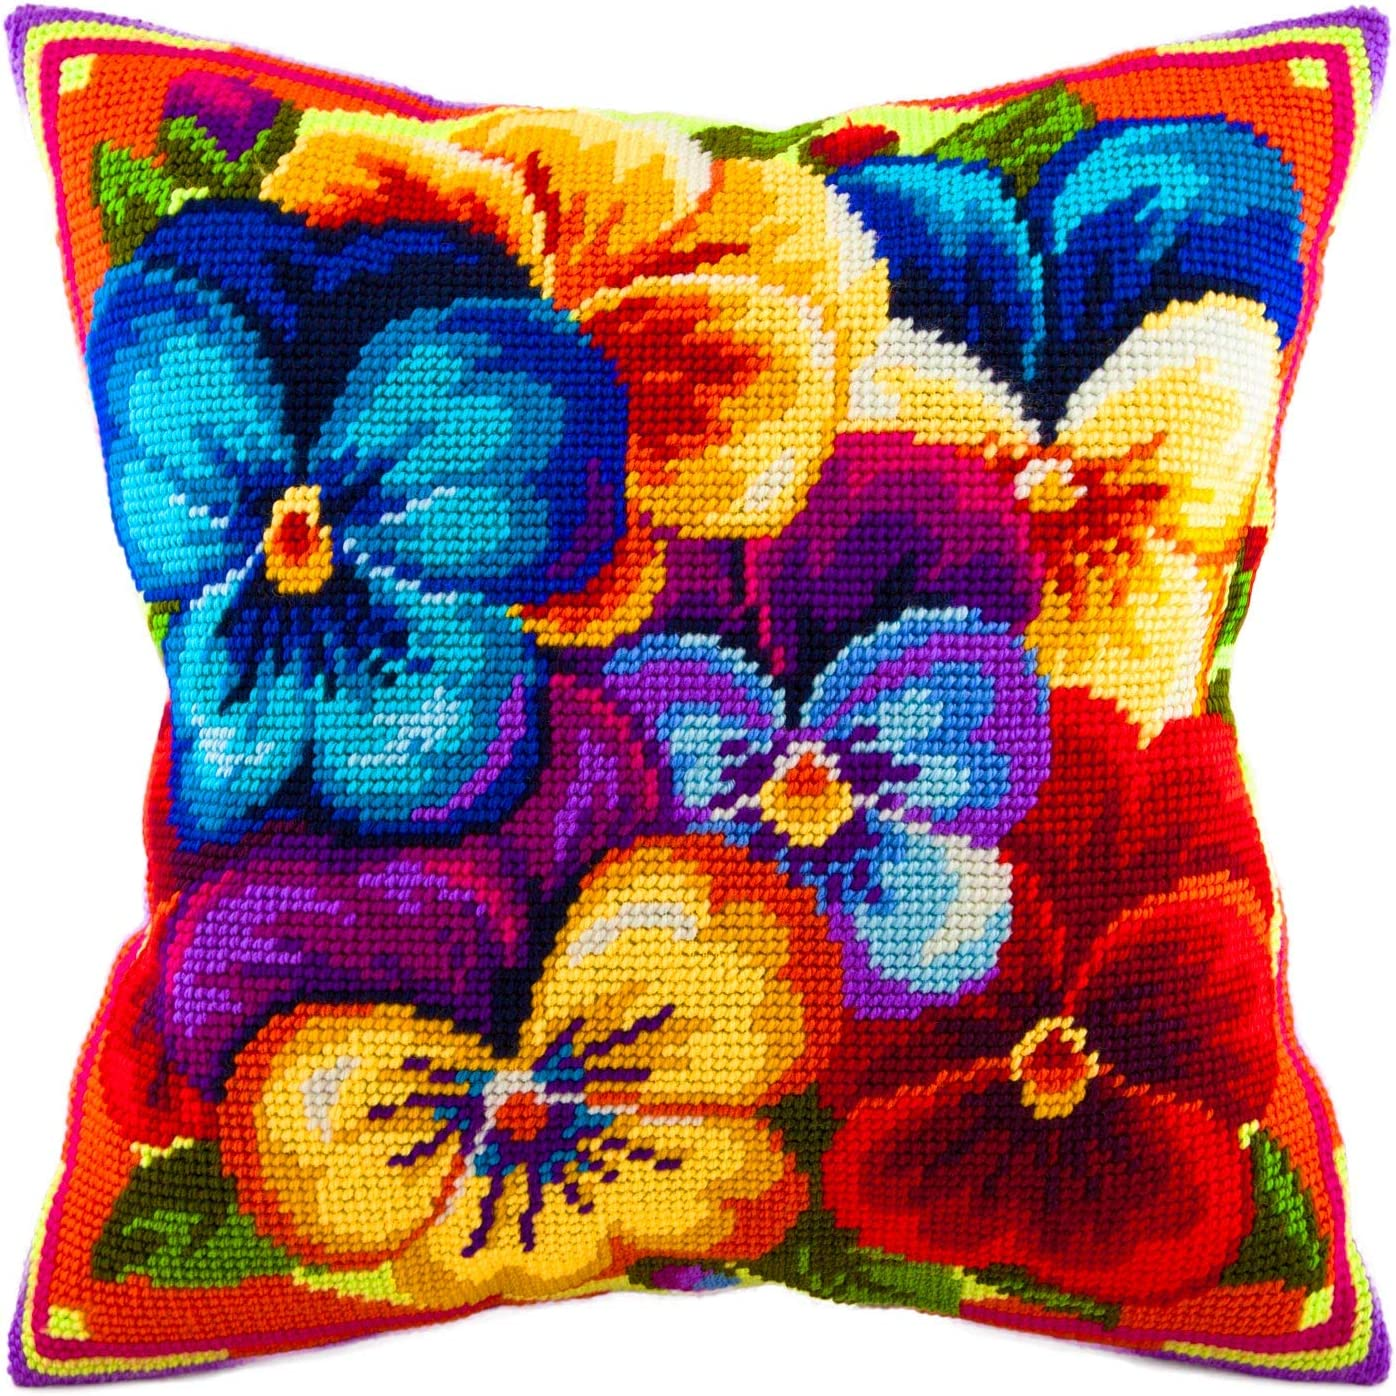 Throw Pillow 16/×16 Inches European Quality Printed Tapestry Canvas Rainbow of Violas Needlepoint Kit